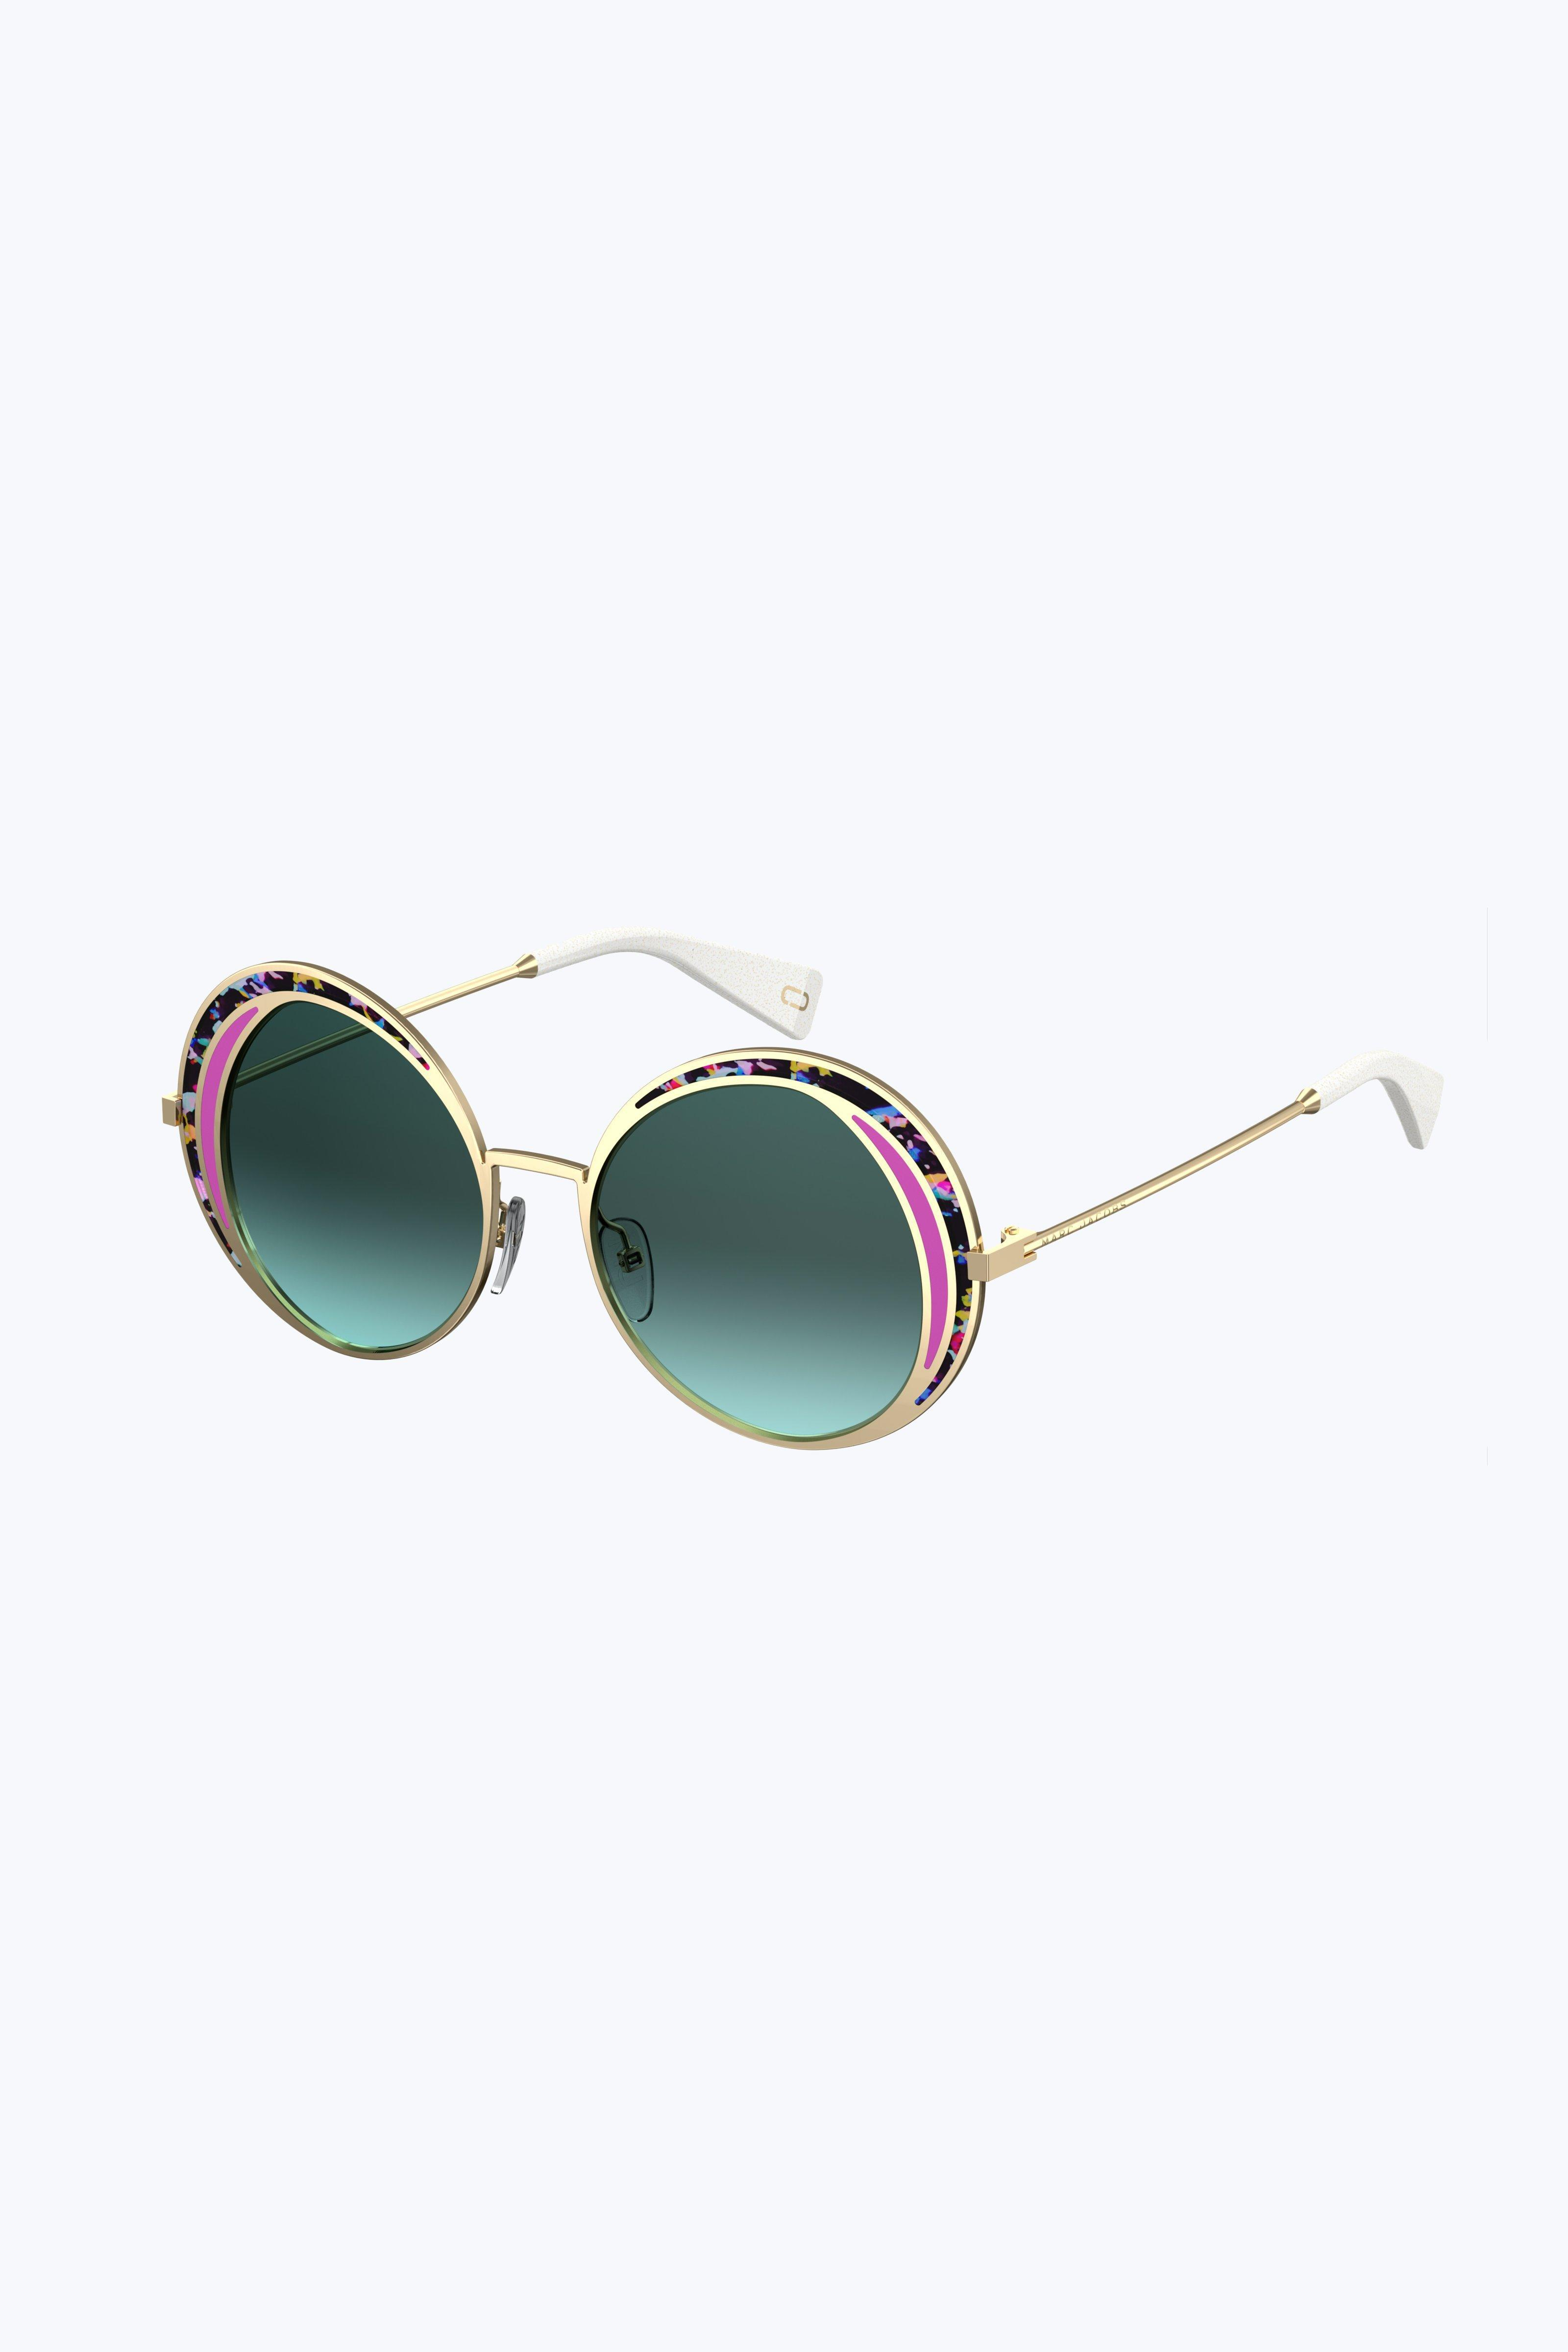 463cd7e01d4 Marc Jacobs Retro Vintage Round Sunglasses in Blue - Lyst